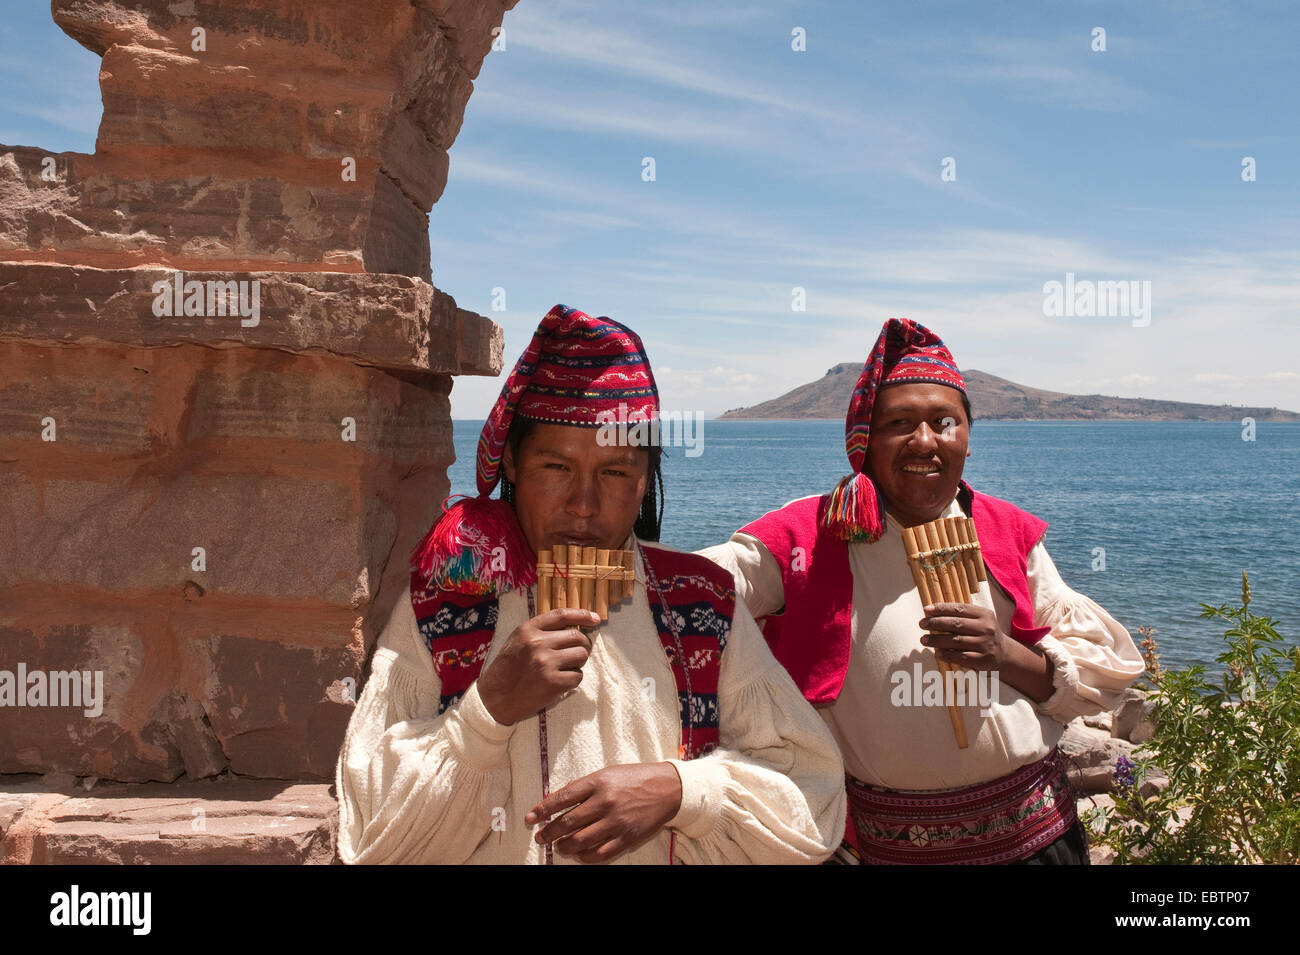 two Indians in traditional clothes playing panflutes at the shore of Lake Titicaca, Peru, Taquile Island, Lake Titicaca - Stock Image